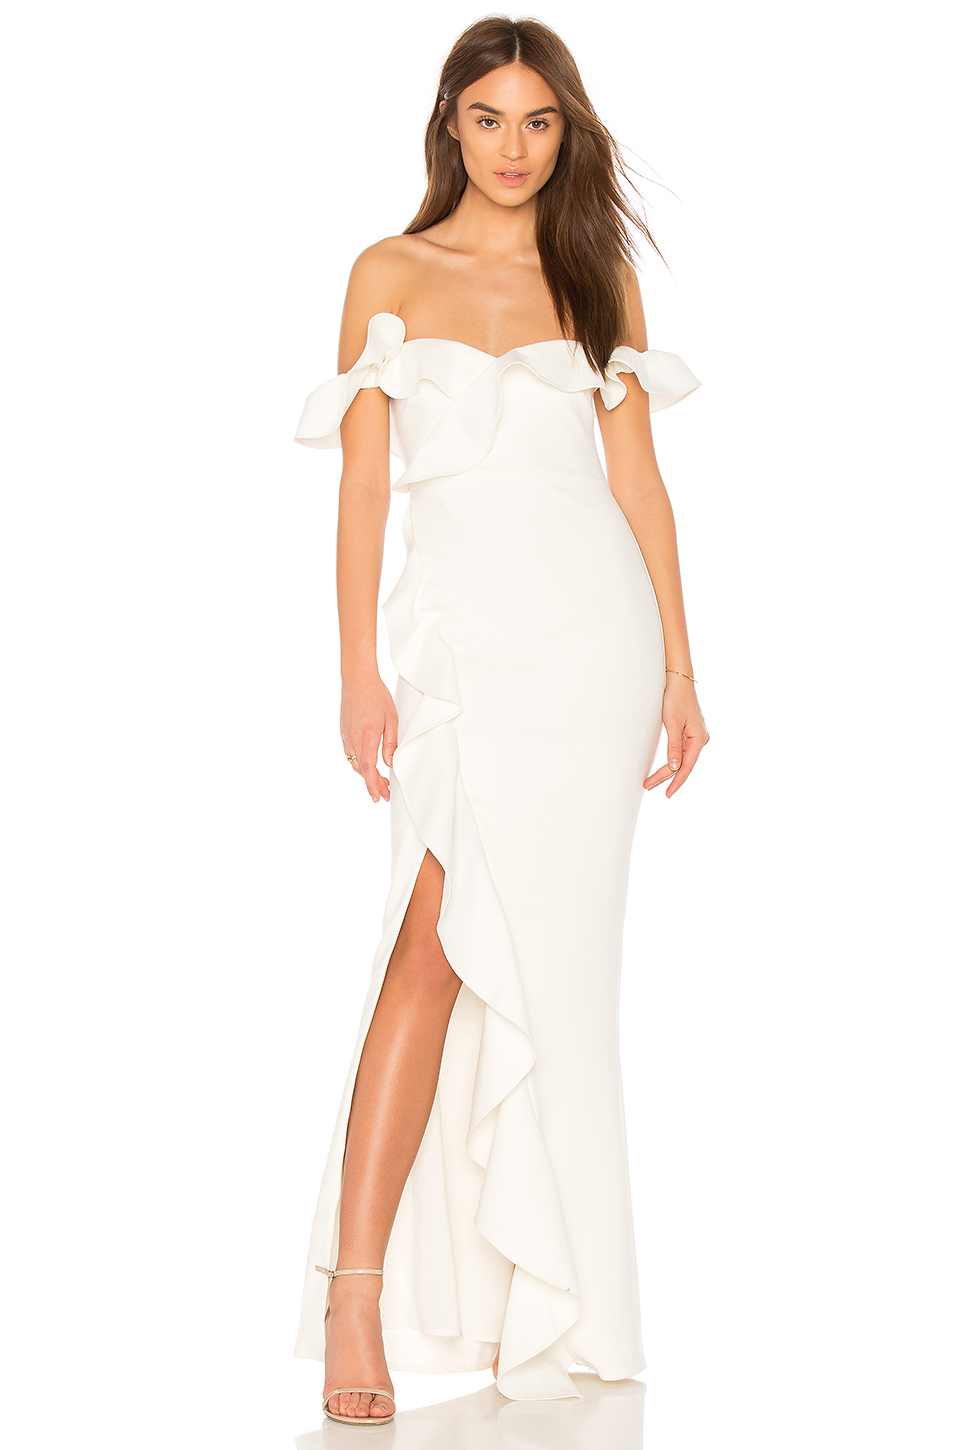 X REVOLVE MILLER BRIDESMAIDS DRESS BY JAY GODFREY, $378 AT REVOLVE.COM